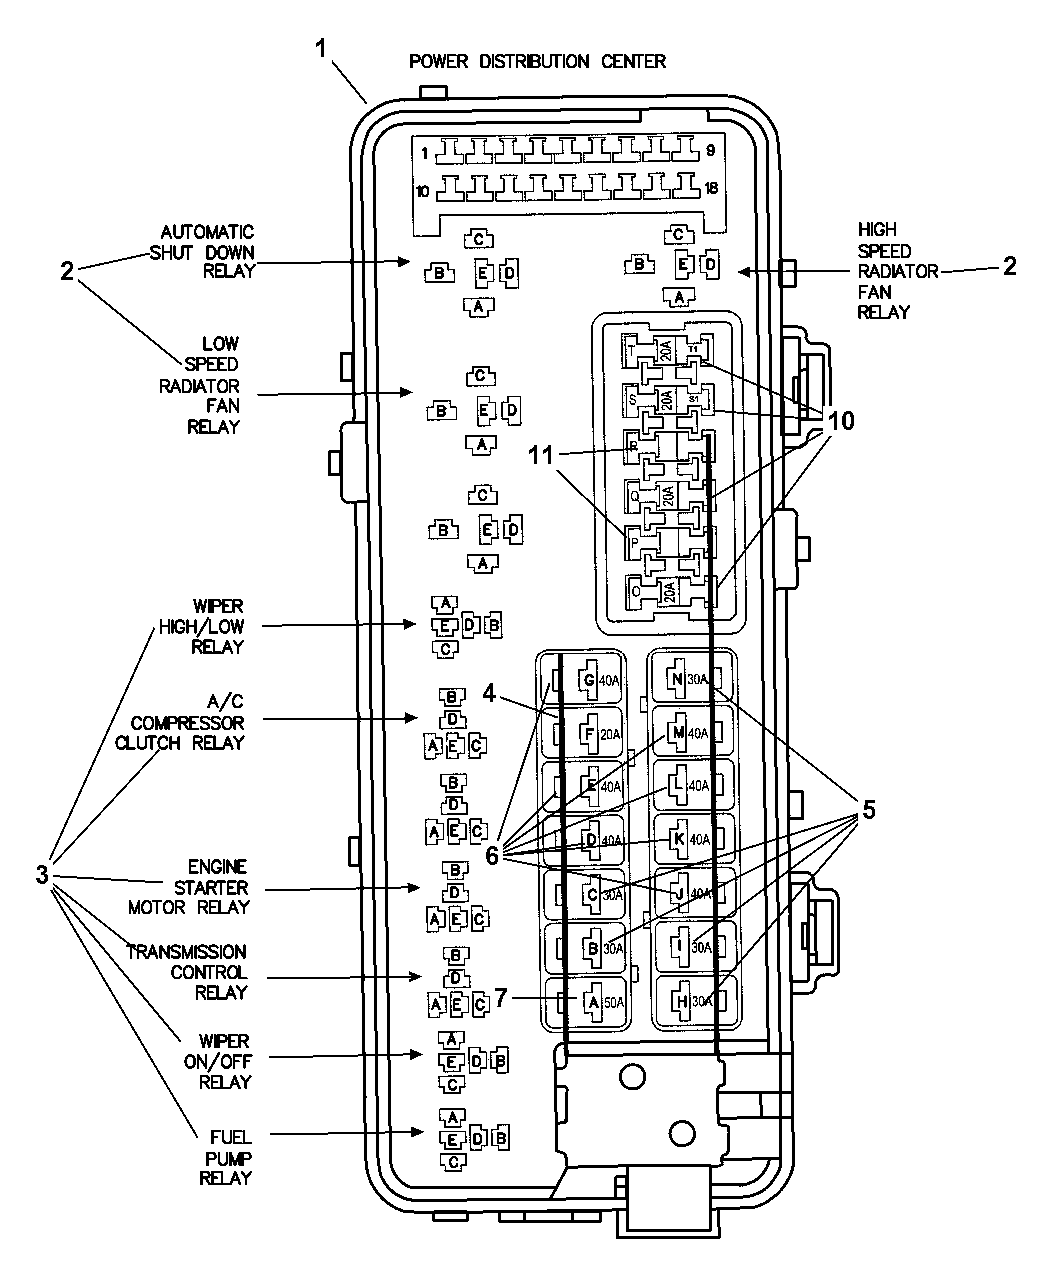 2004 dodge intrepid power distribution center - relays & fuses 1999 dodge intrepid fuse box diagram #6